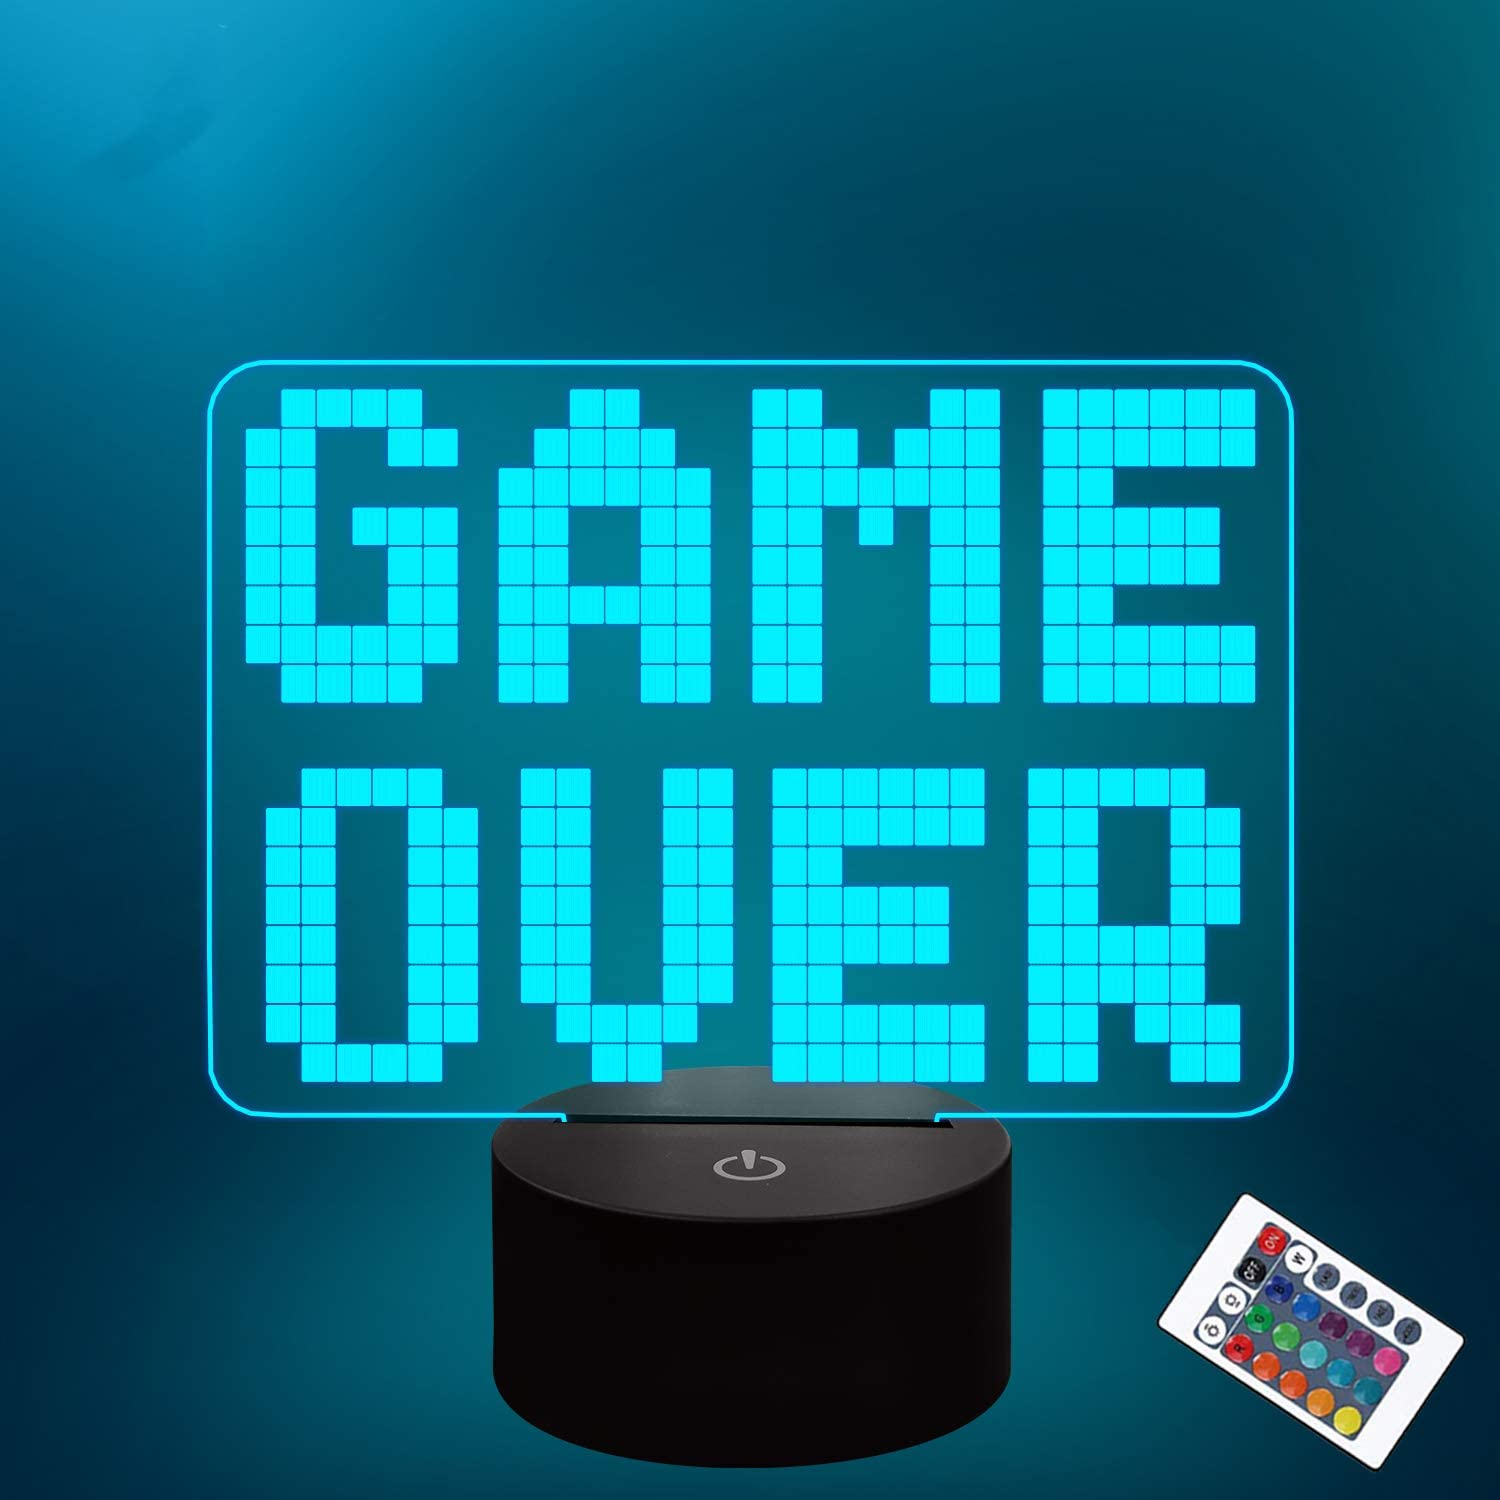 Lampeez Pixel Game Over LED Lamp Night Light 3D Illusion lamp for Kids, 16 Colors Changing with Remote, Kids Bedroom Game Room Decor as Xmas Holiday Birthday Gifts for Boys Girls